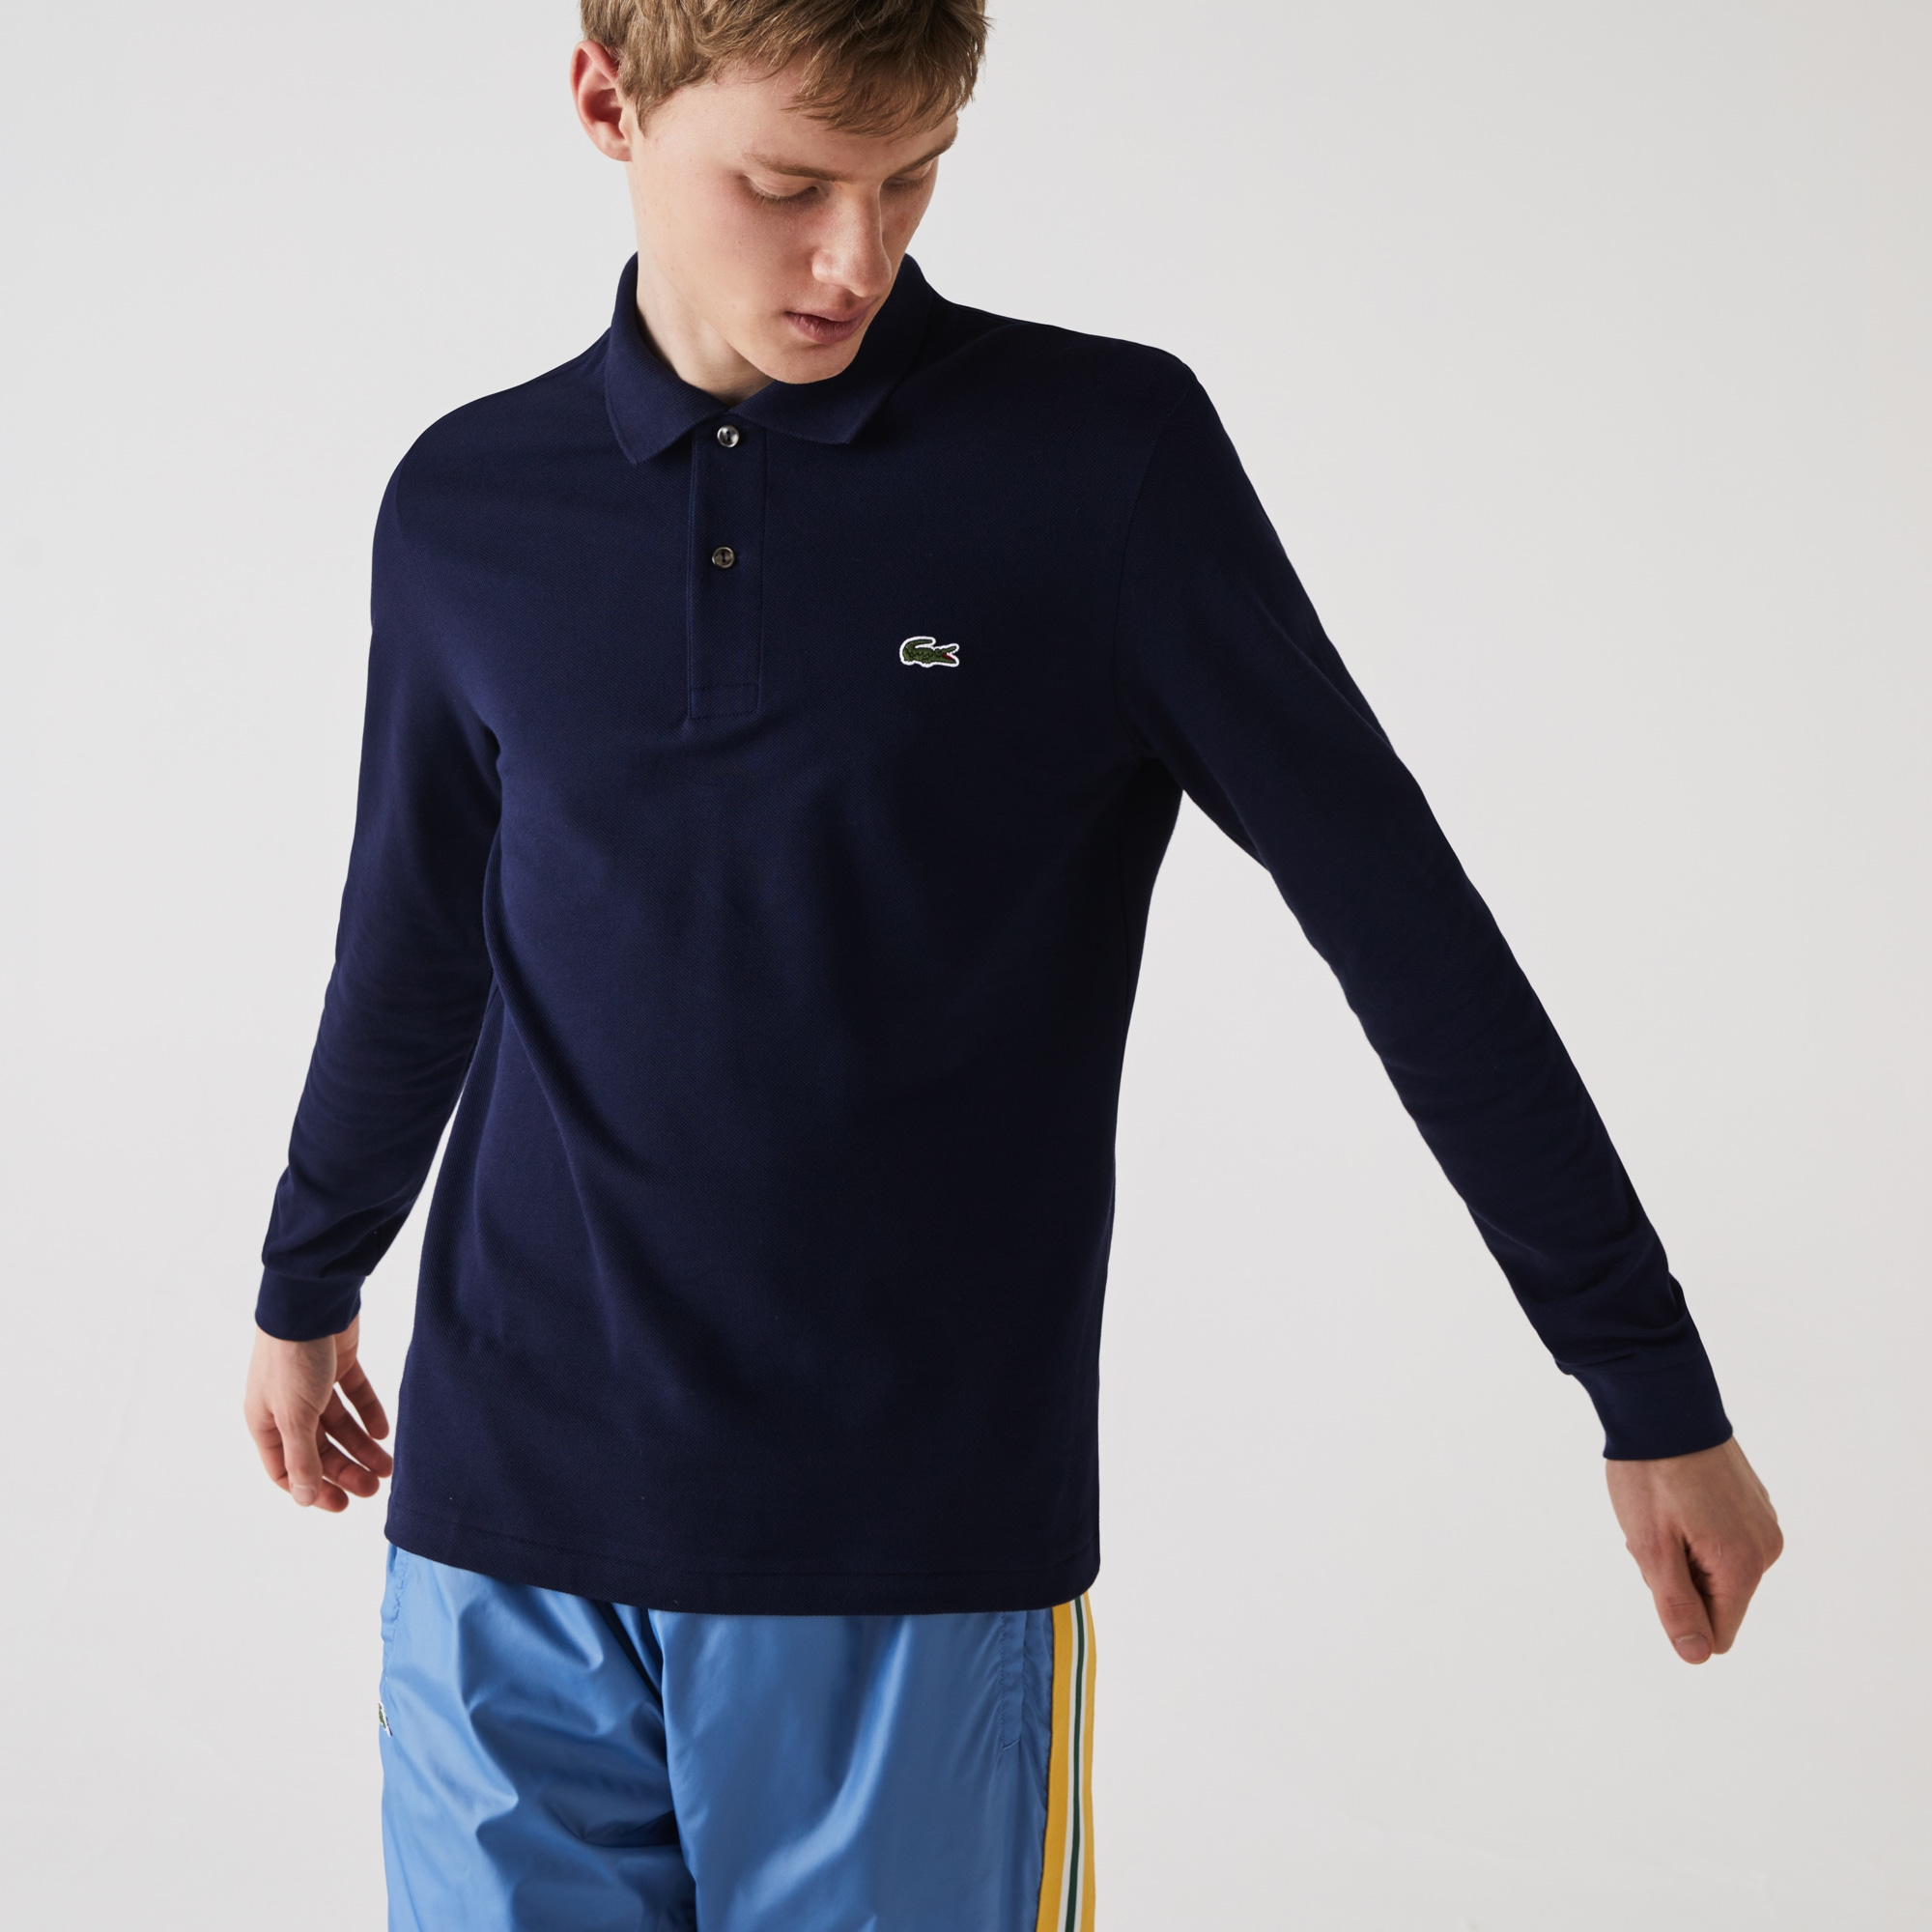 Men's Long-Sleeve L.12.12 Polo Shirt